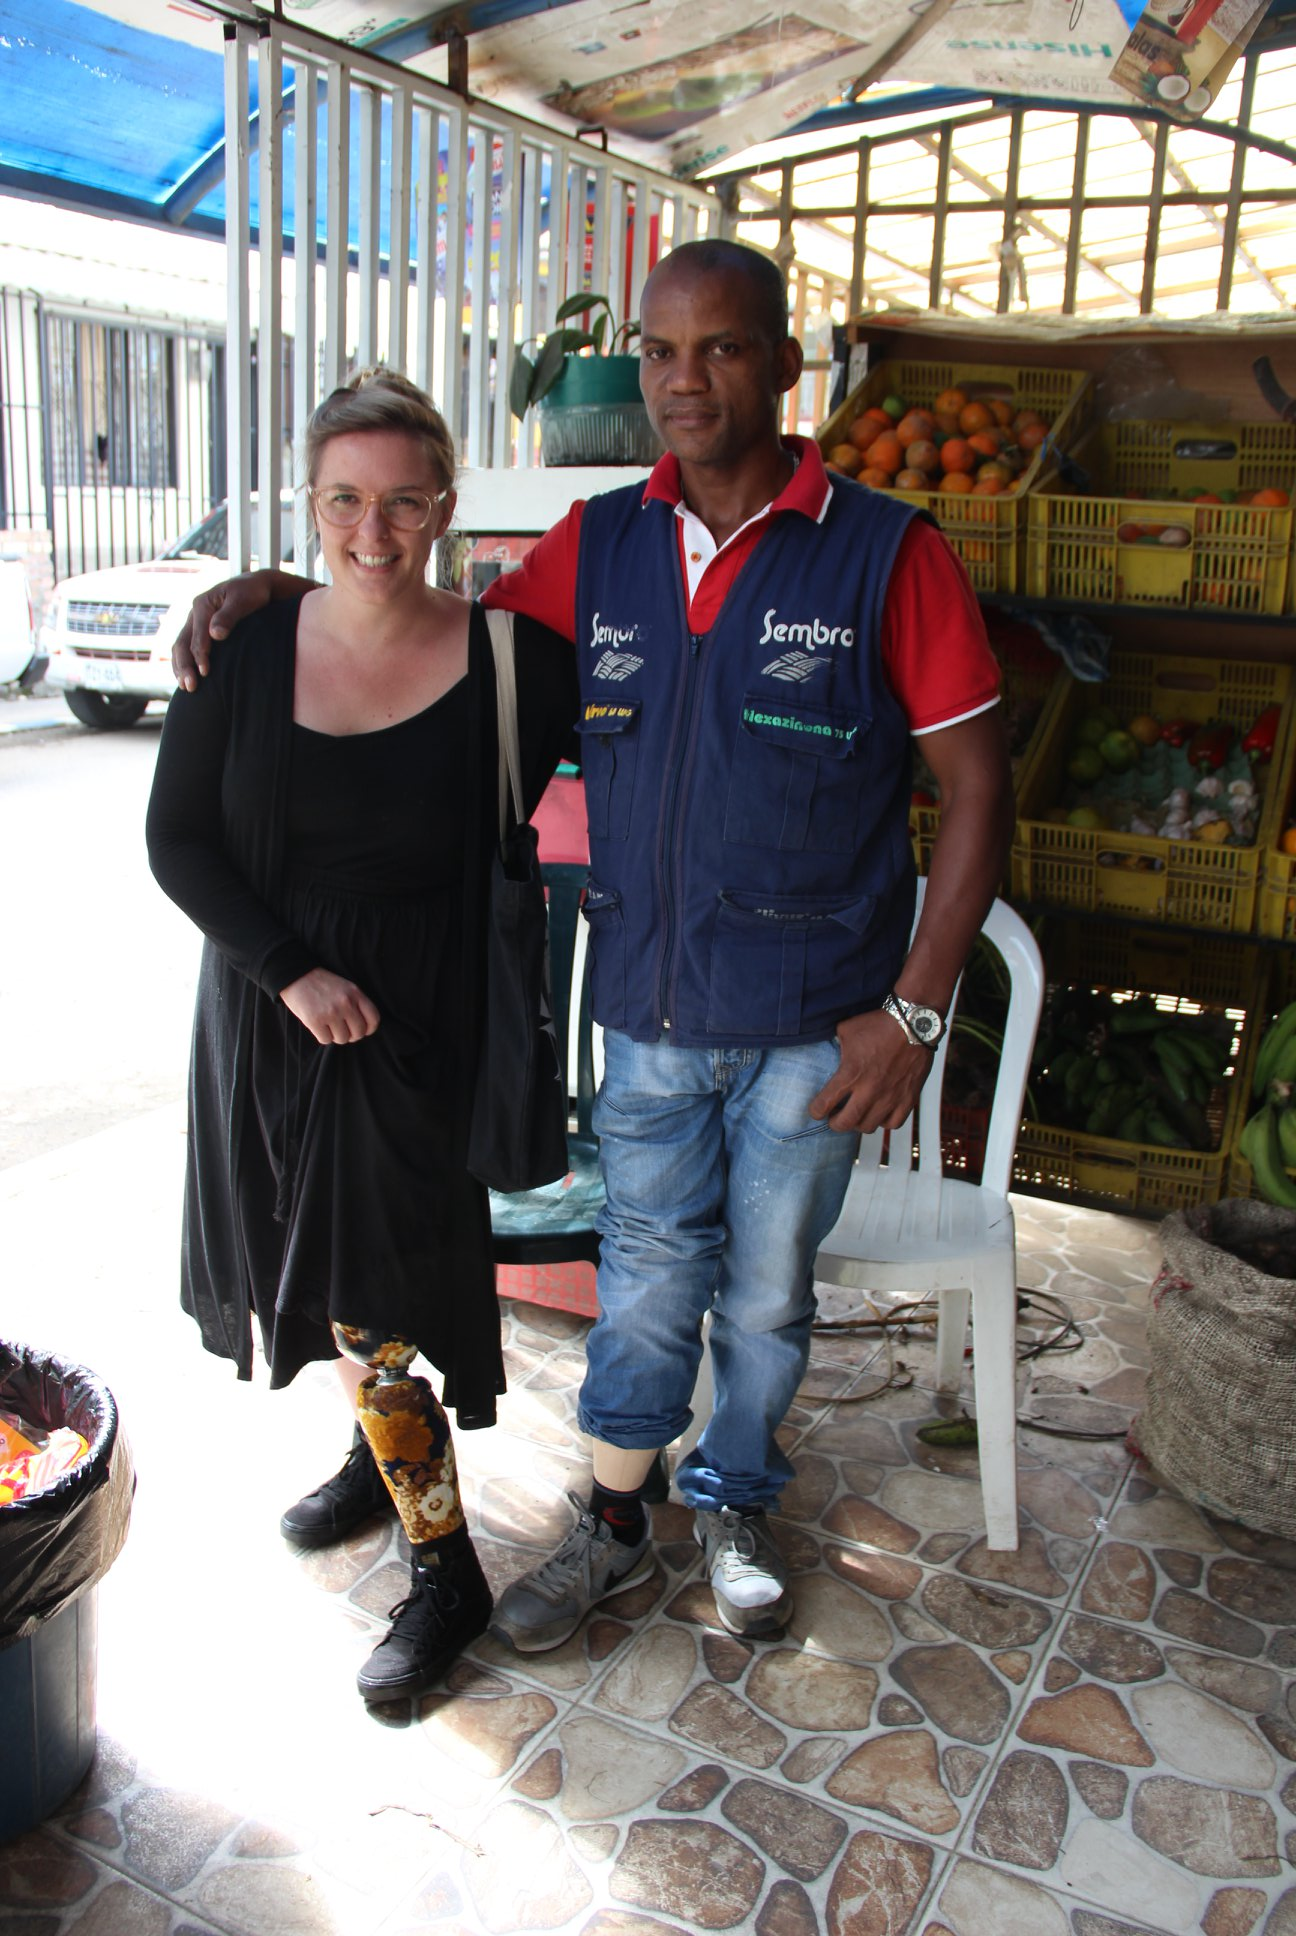 Robbie with a Latin American man, both showing off their prosthetic legs